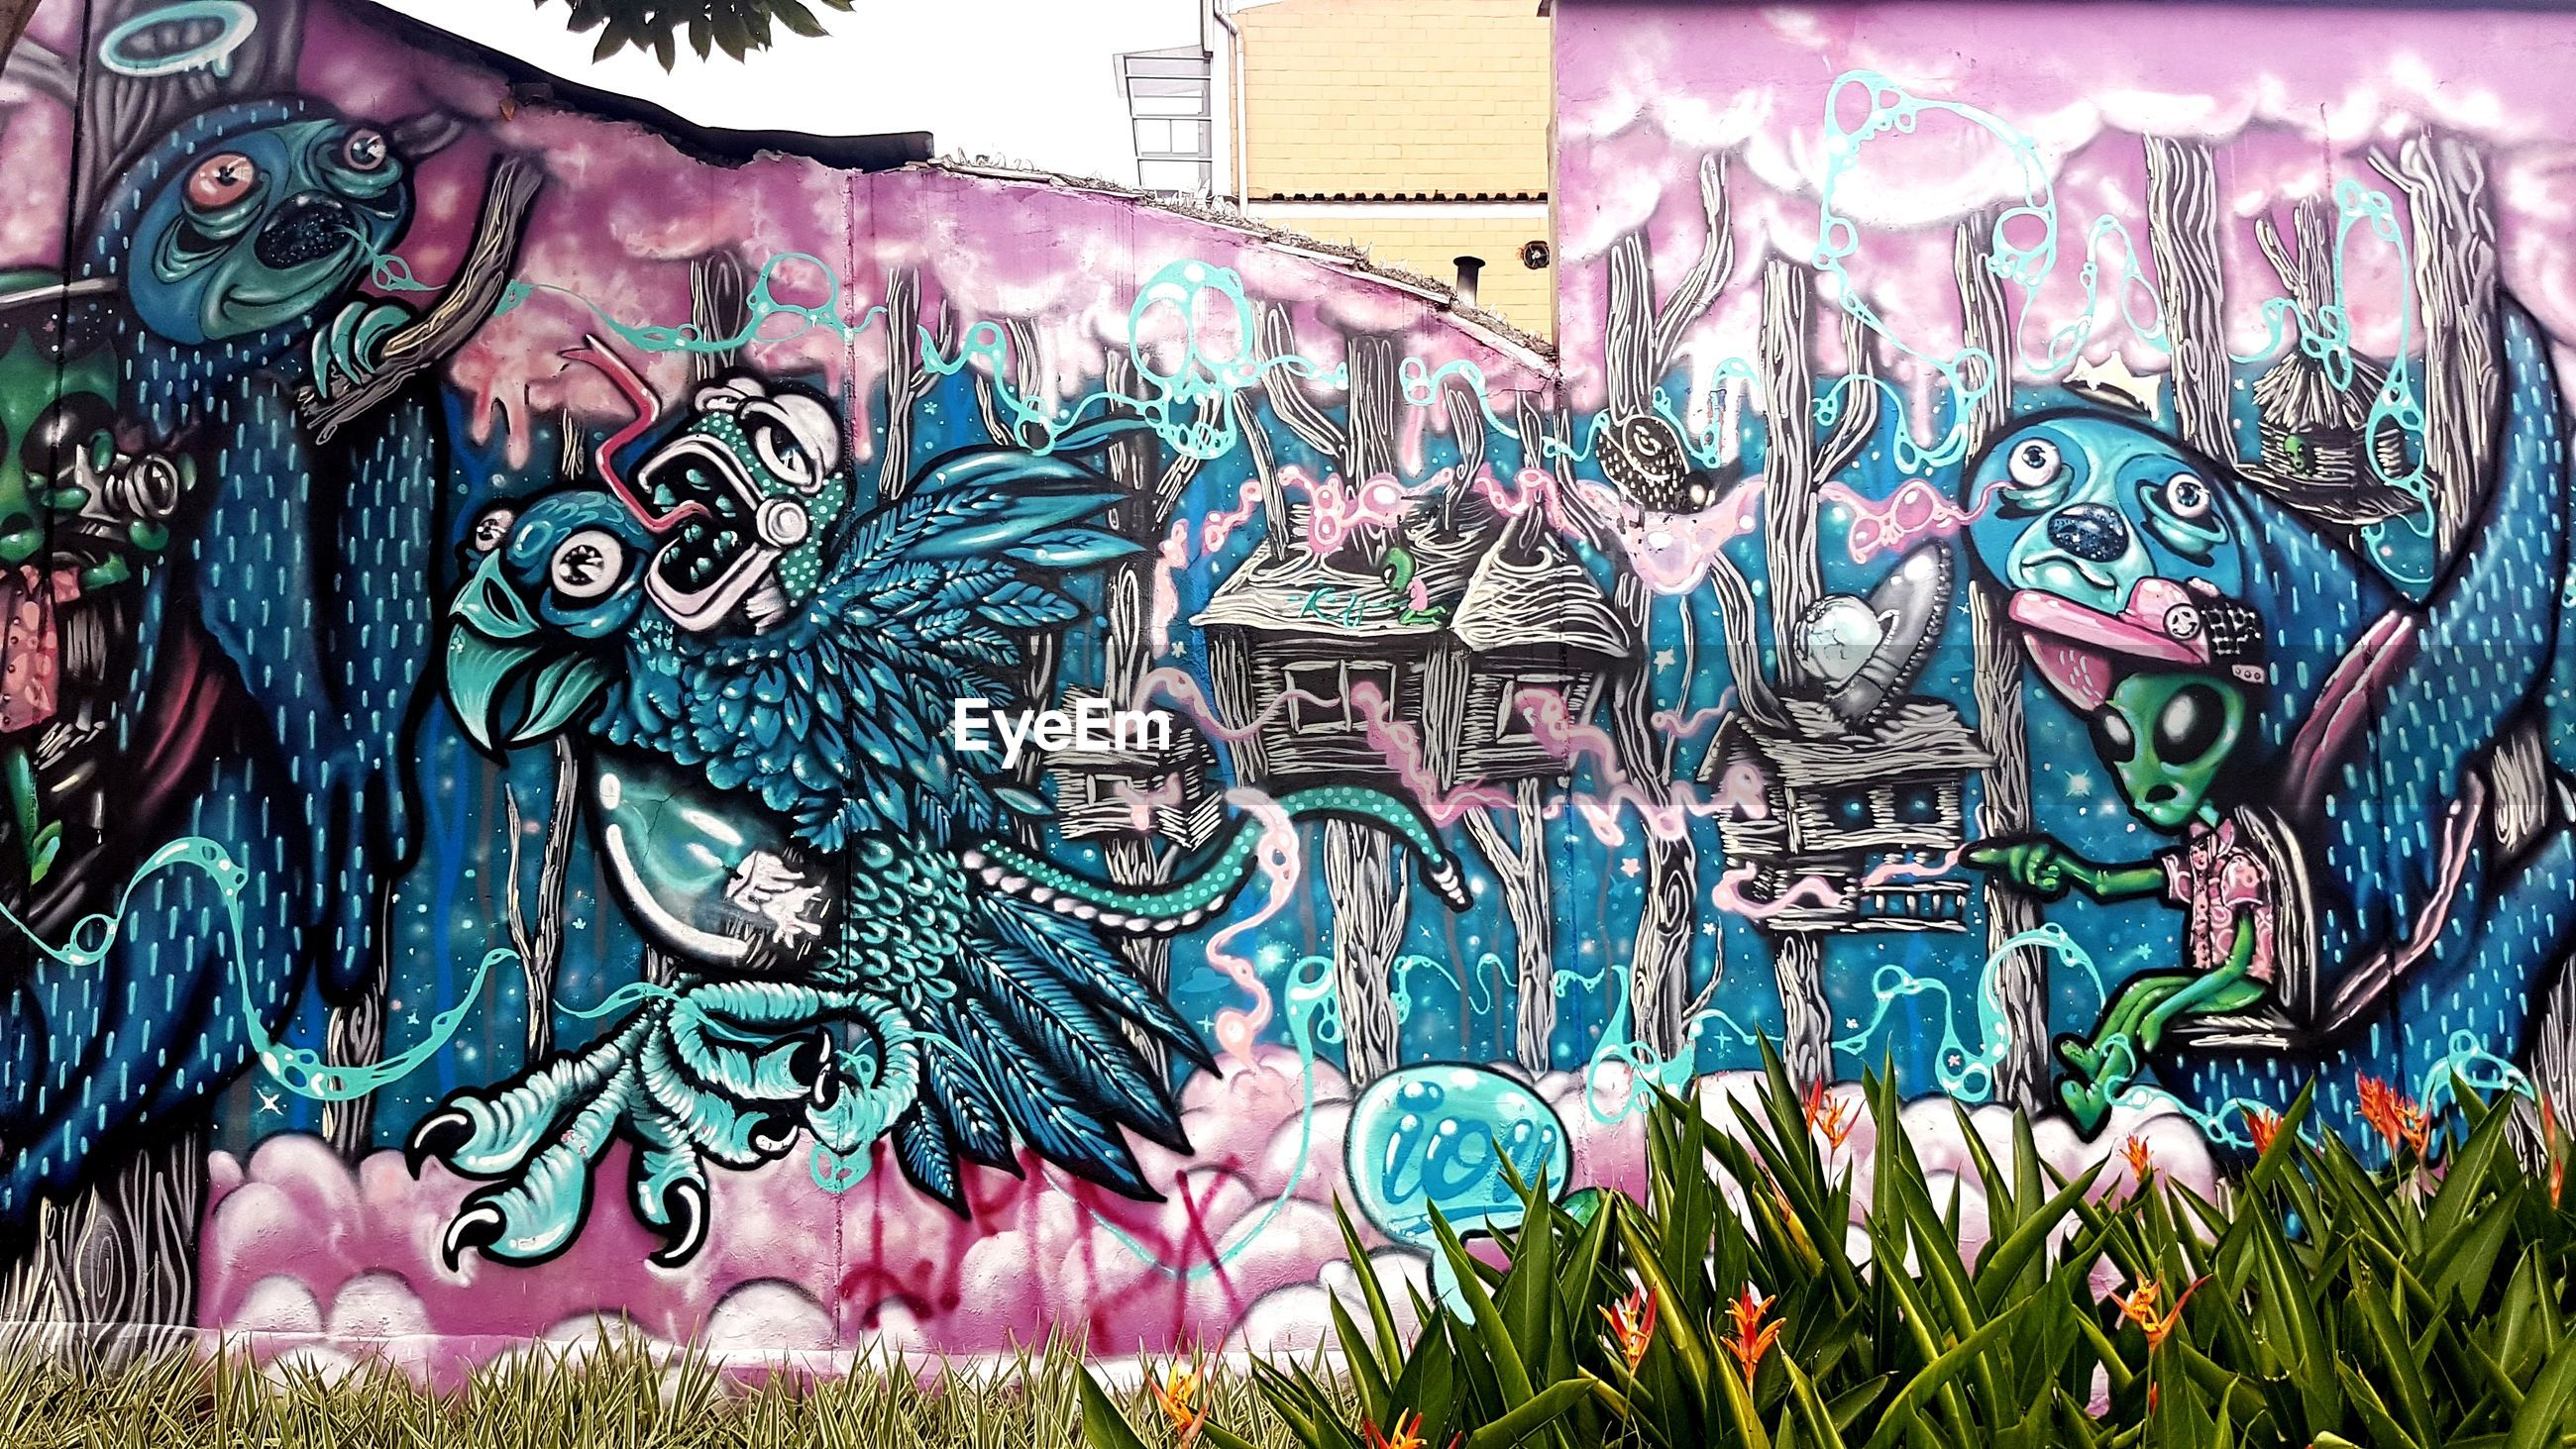 art and craft, multi colored, creativity, representation, no people, close-up, graffiti, day, pattern, craft, architecture, outdoors, plant, wall, human representation, paint, street art, built structure, mural, ornate, festival, floral pattern, turquoise colored